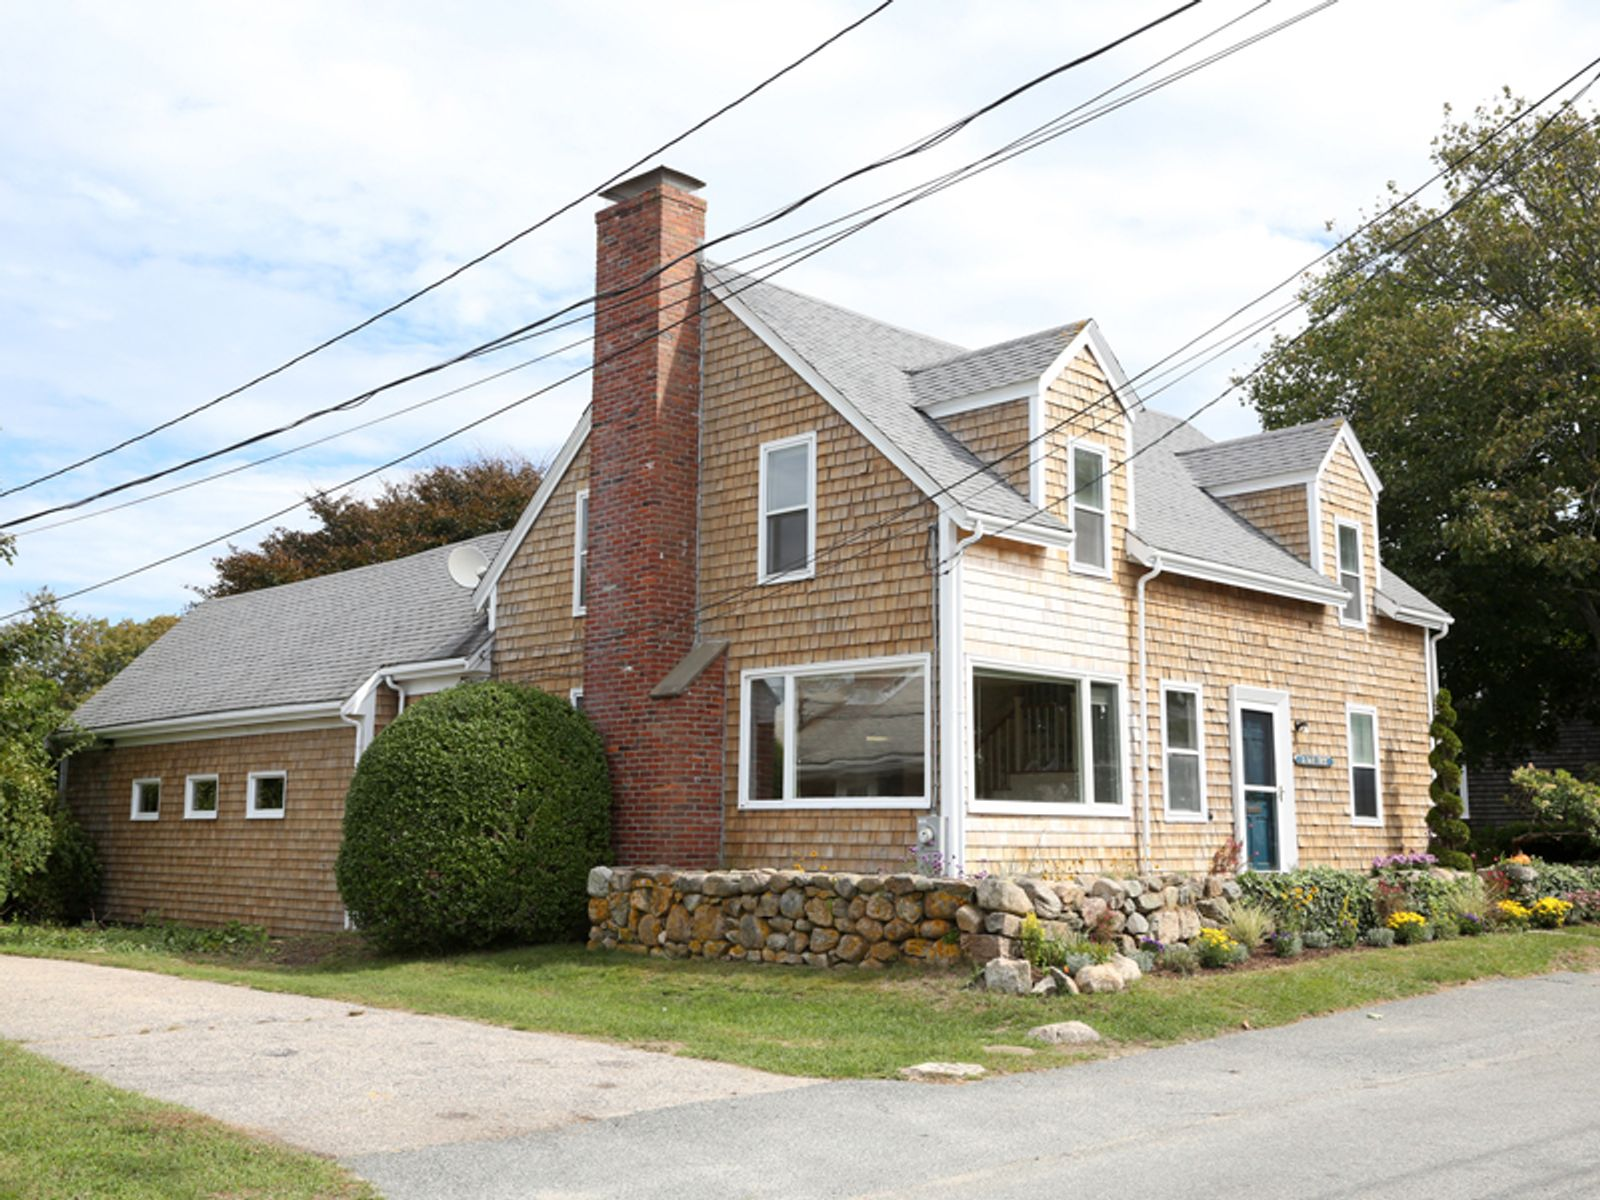 Classic Expanded Cape with Views, Woods Hole MA Single Family Home - Cape Cod Real Estate